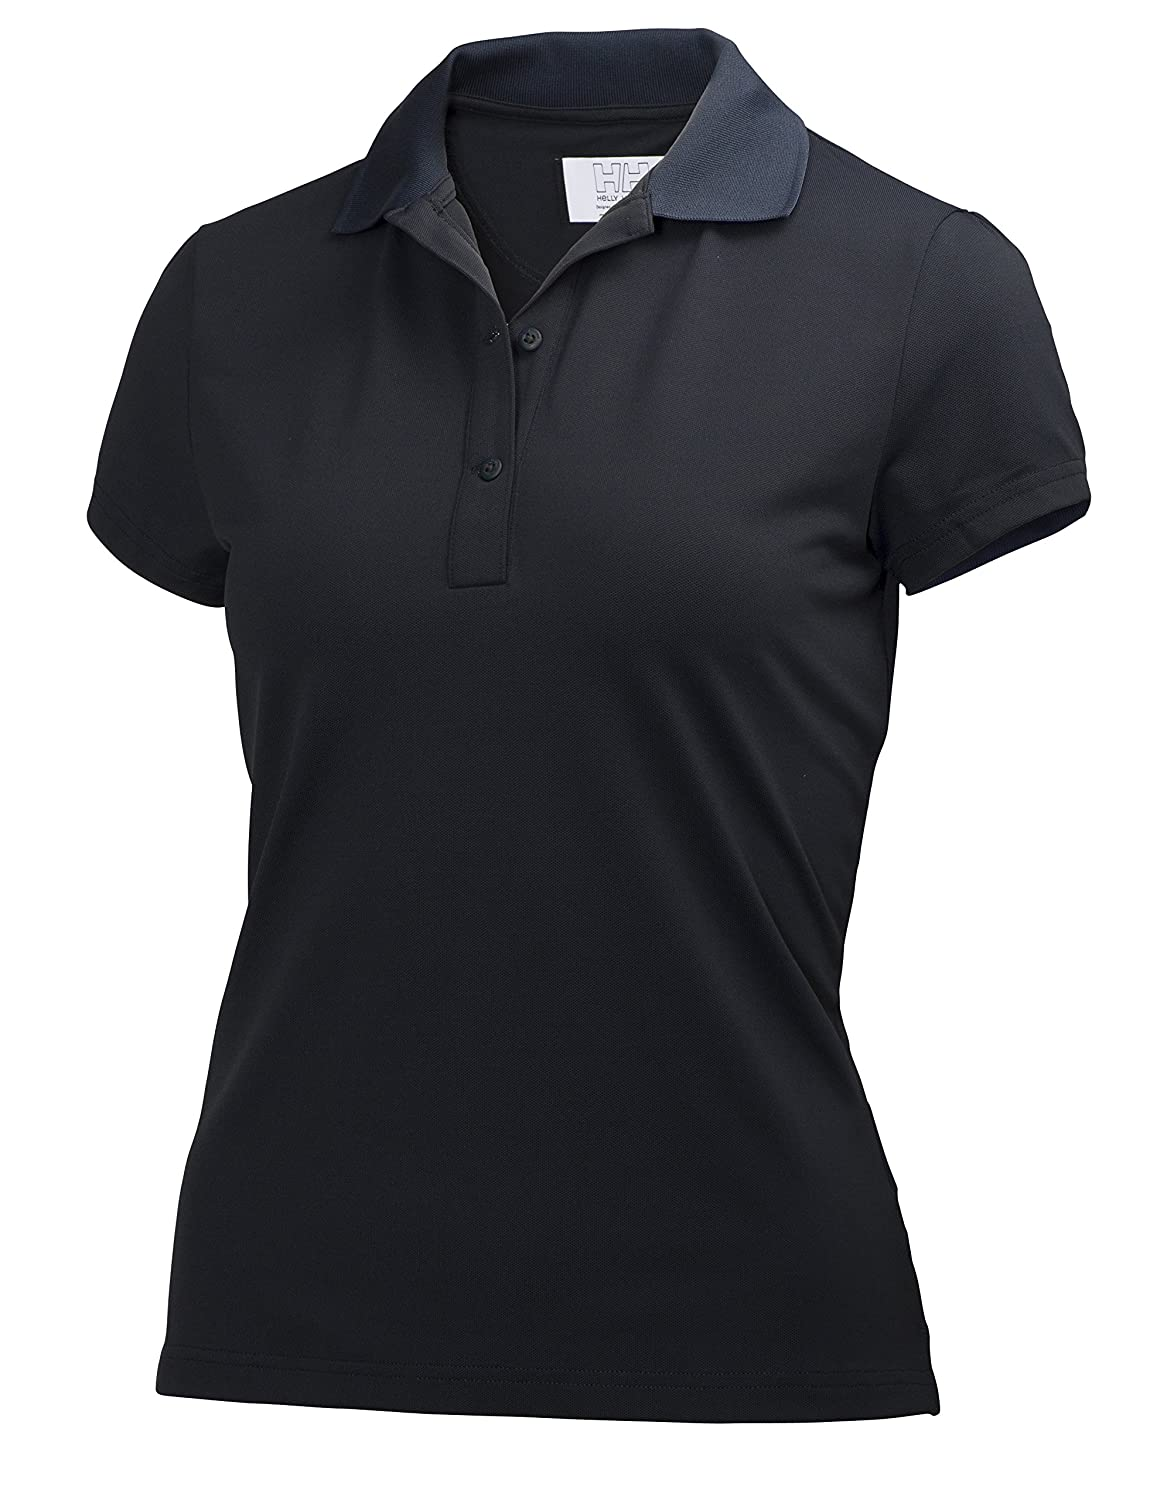 Helly Hansen Women's Dove Polo Shirt B00LFZDXQM-p